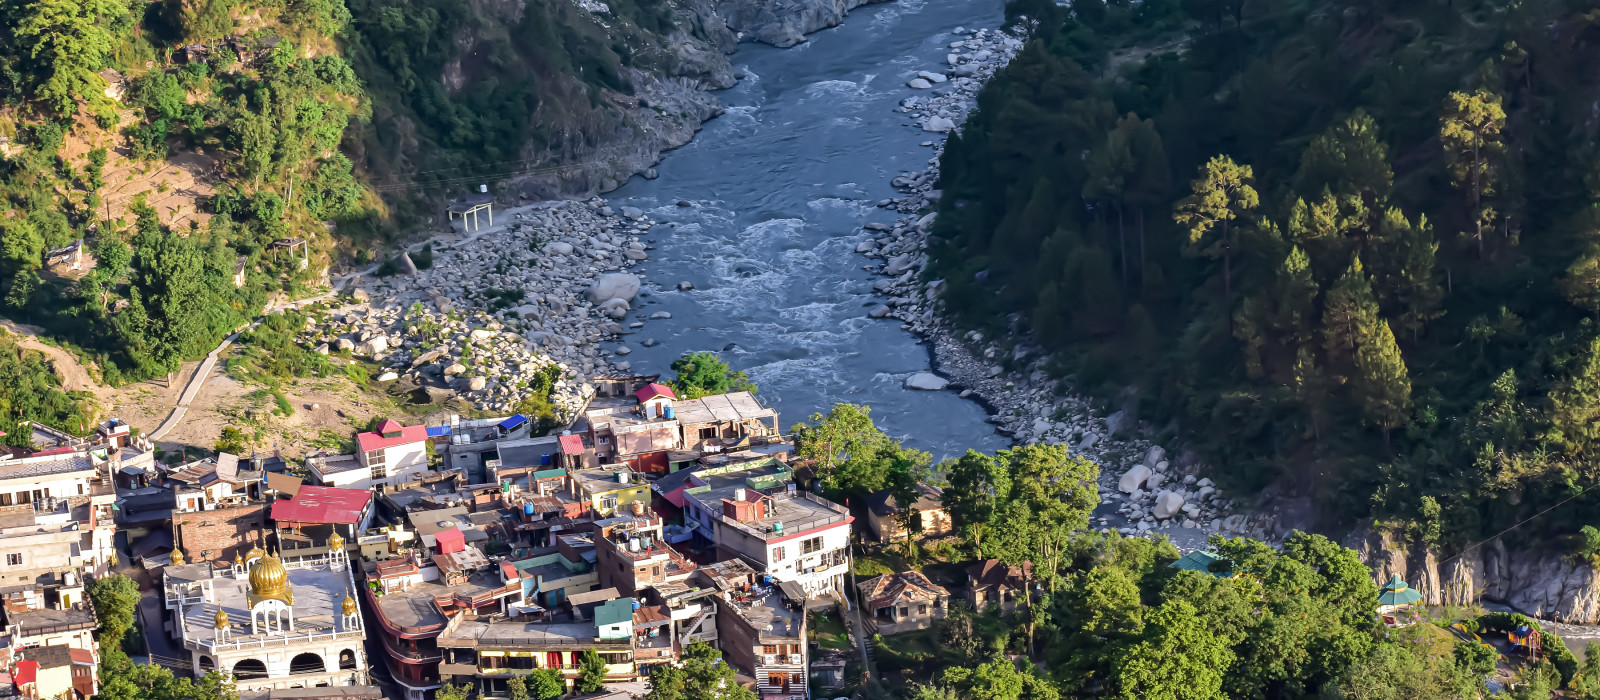 Top view of the house and village in the bank of river from the mountain in north India